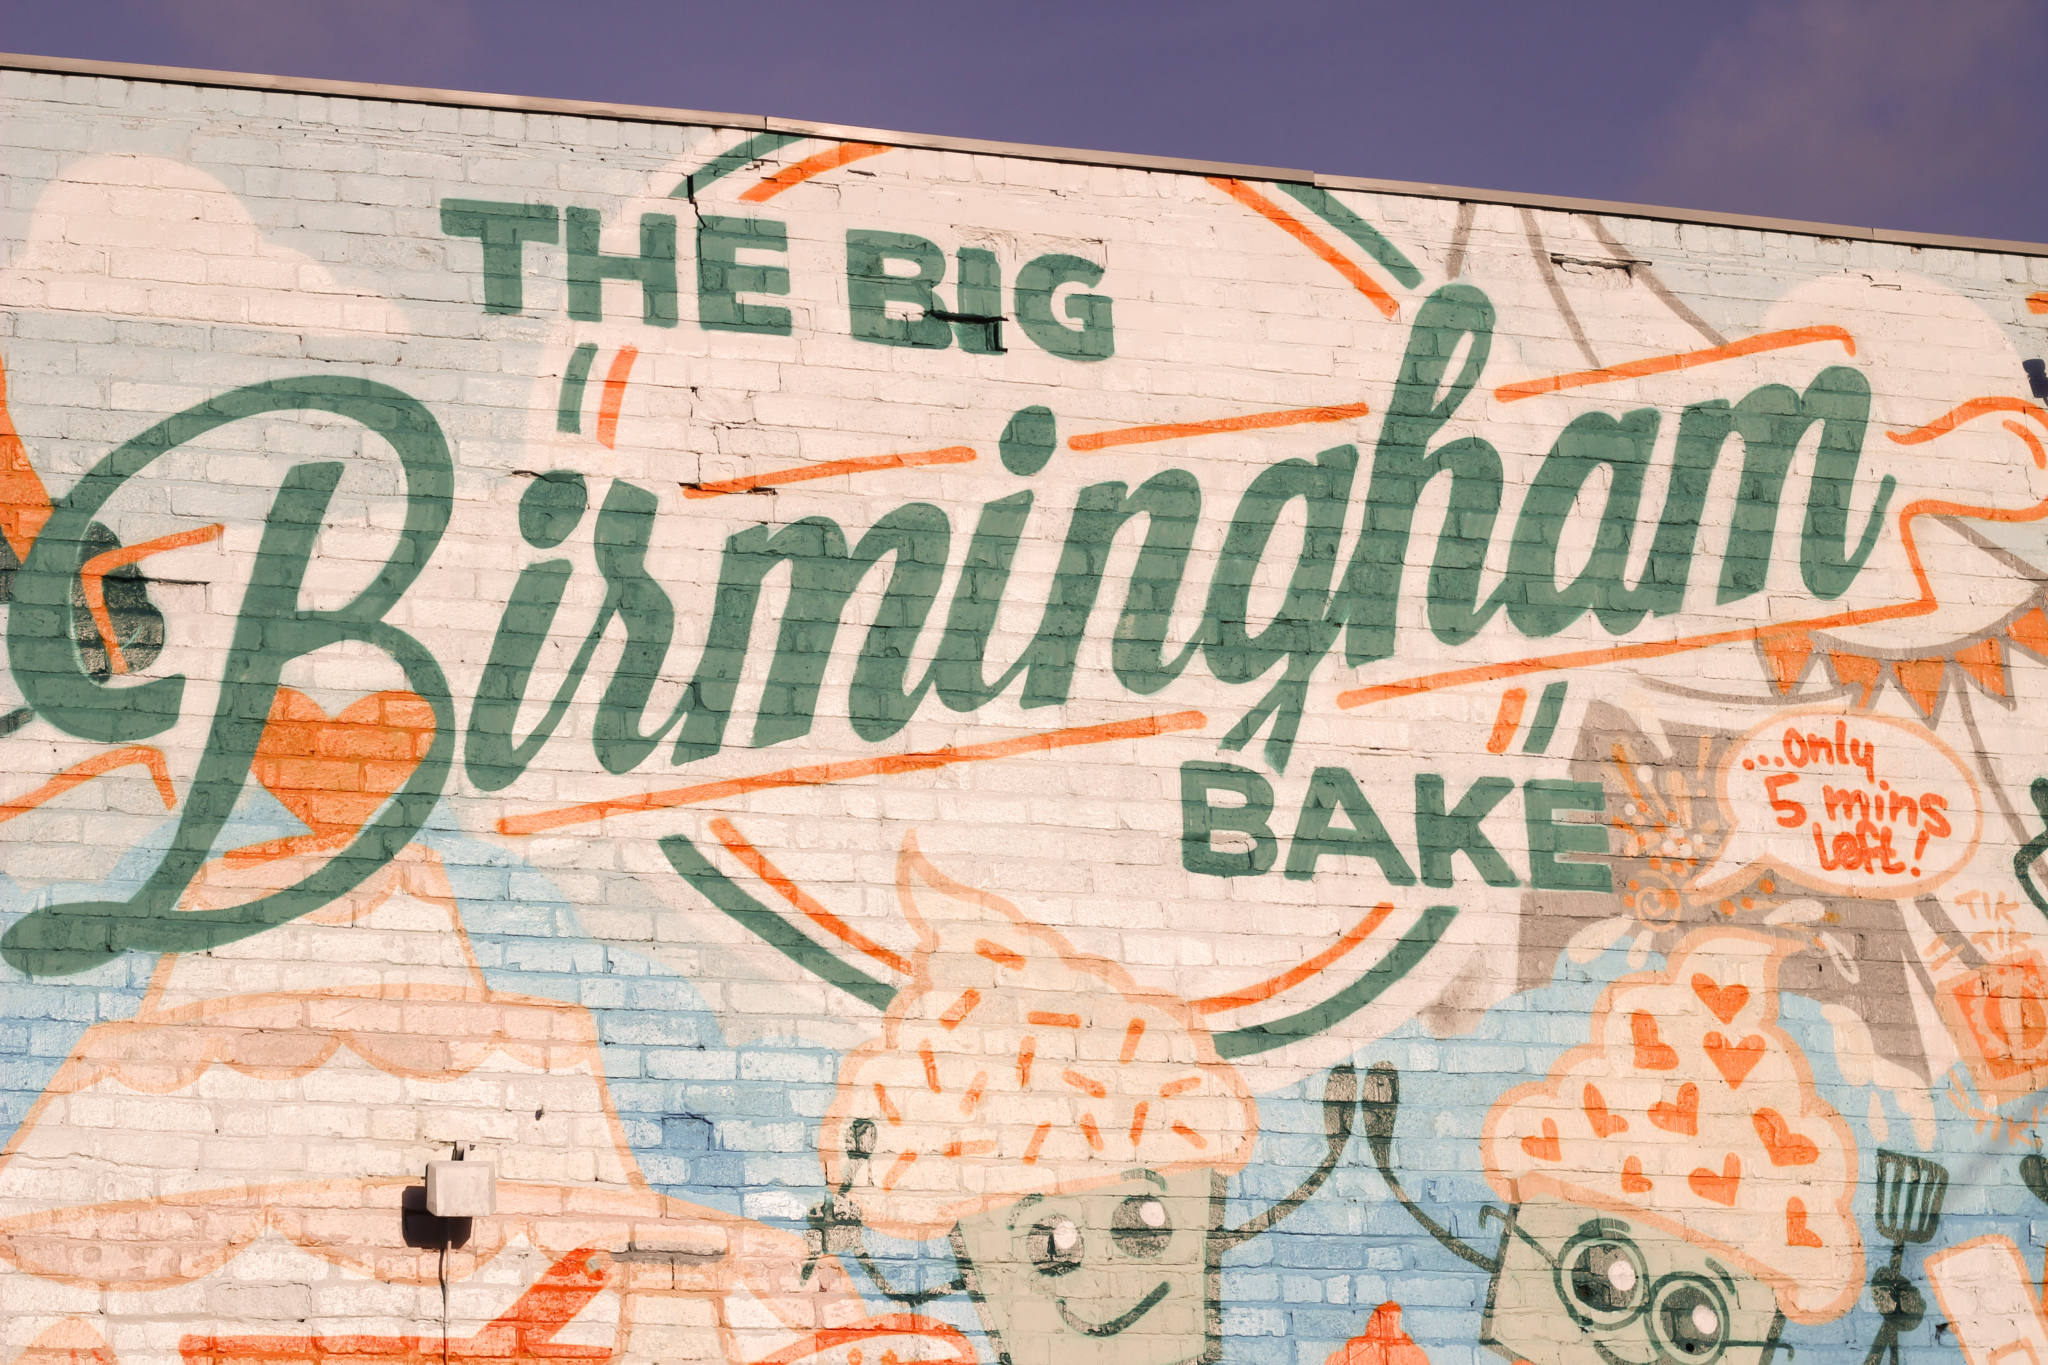 Graffiti Art on side of building, The Big Birmingham Bake with cupcake painting